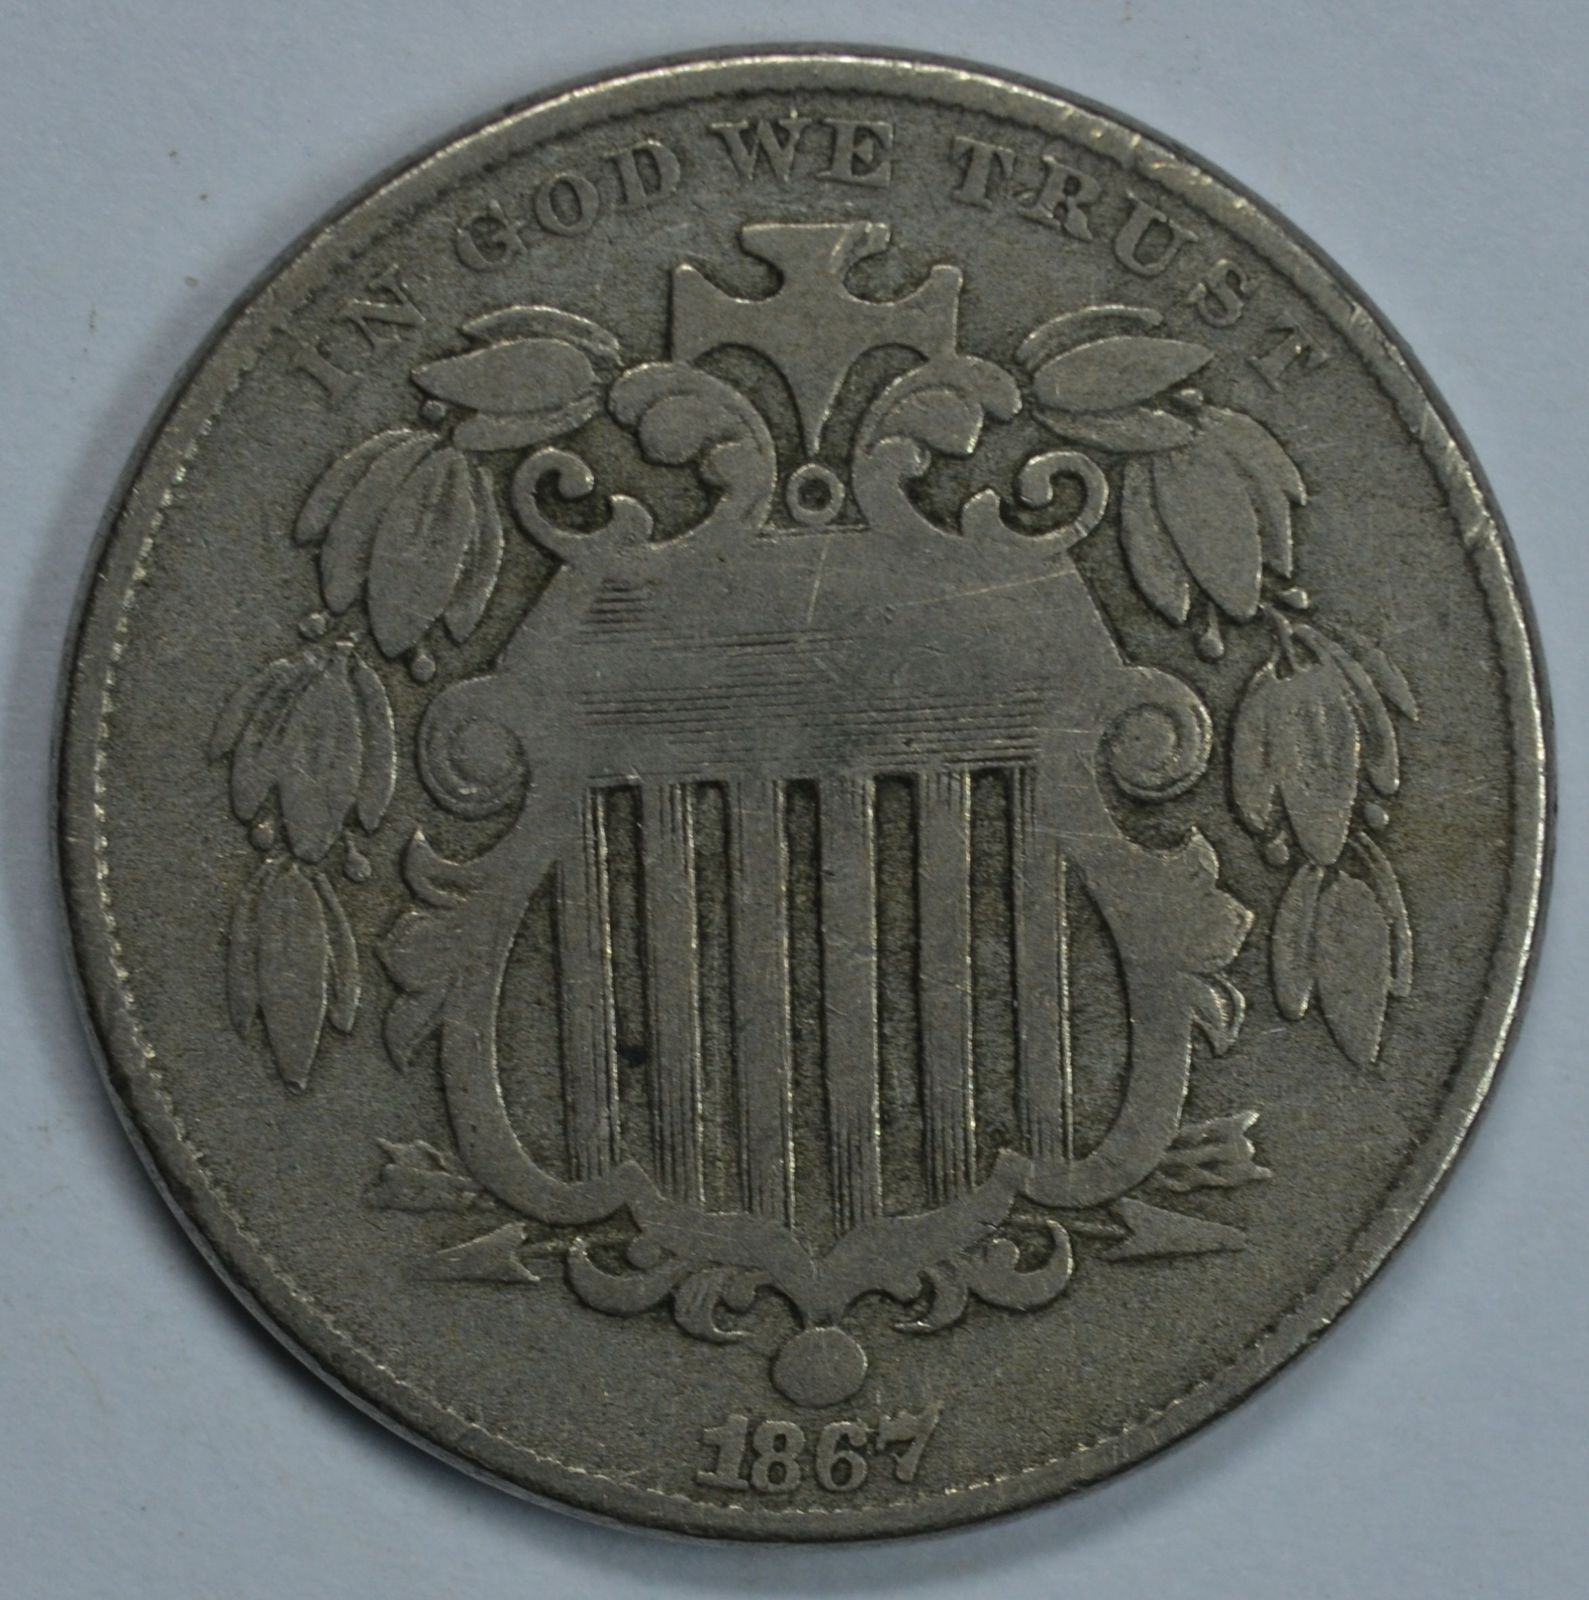 Primary image for 1867 Shield nickel VG/F details